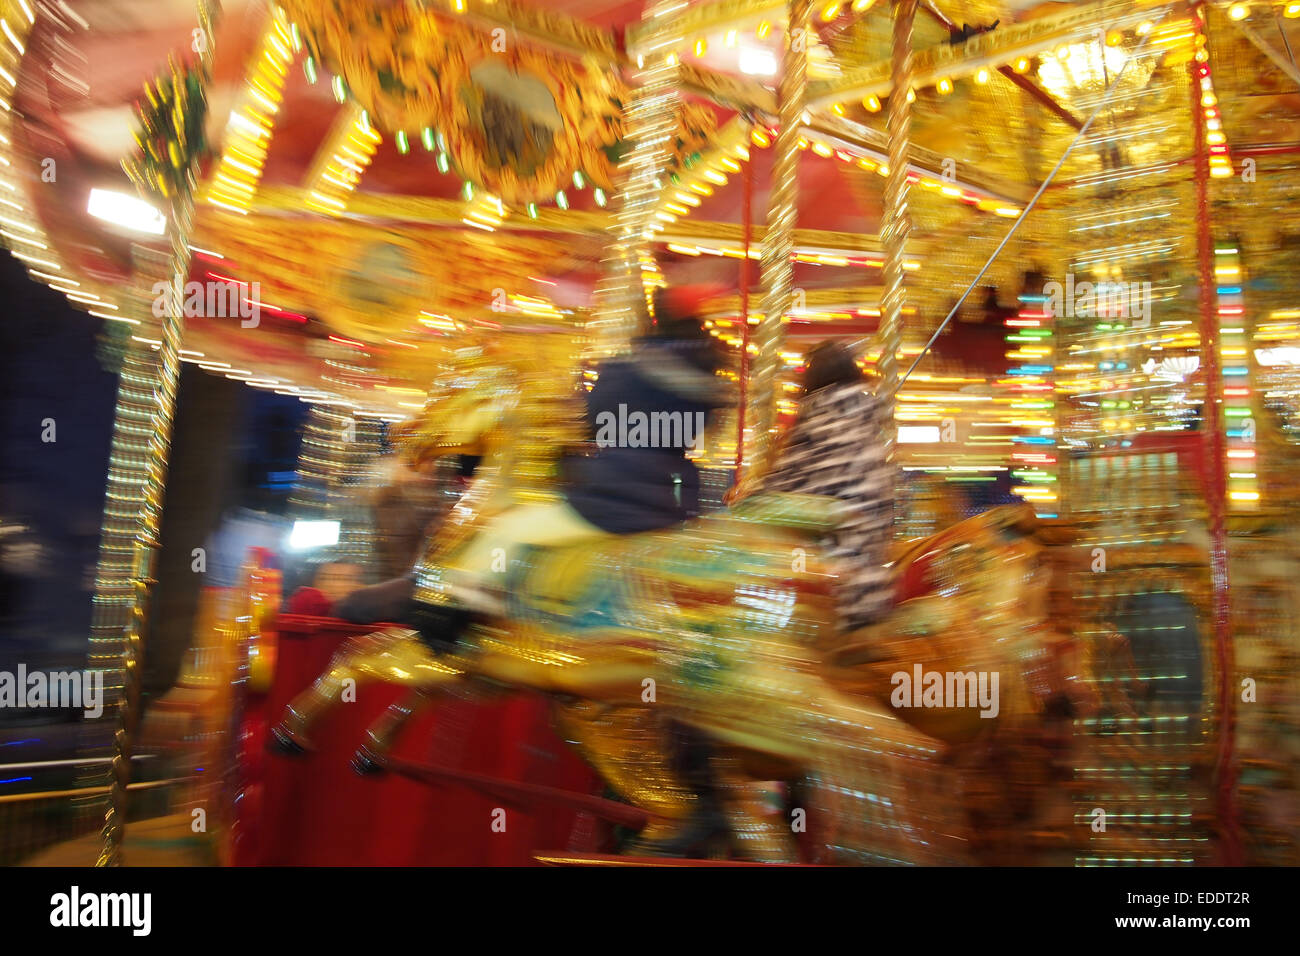 Christmas Funfair at Leicester Square in London - Stock Image